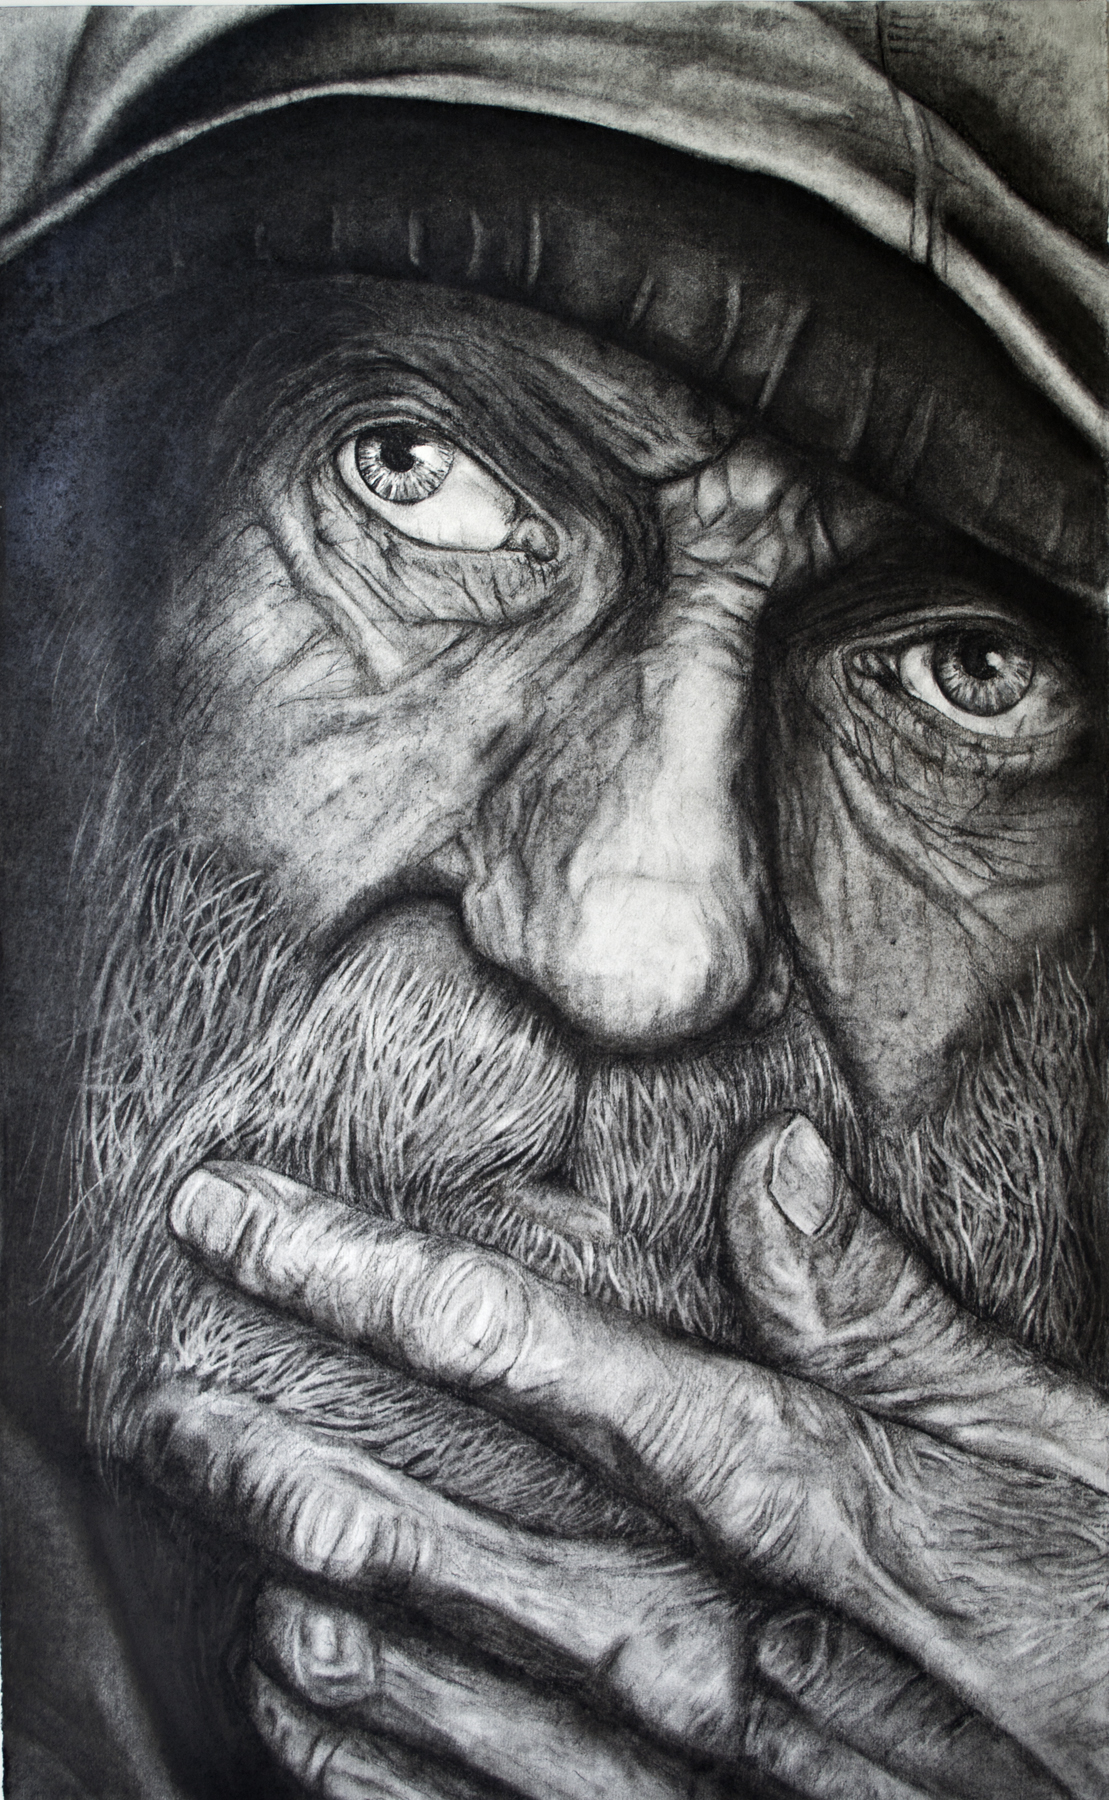 The Thinker   Charcoal  2011   *Pentagon Exhibit